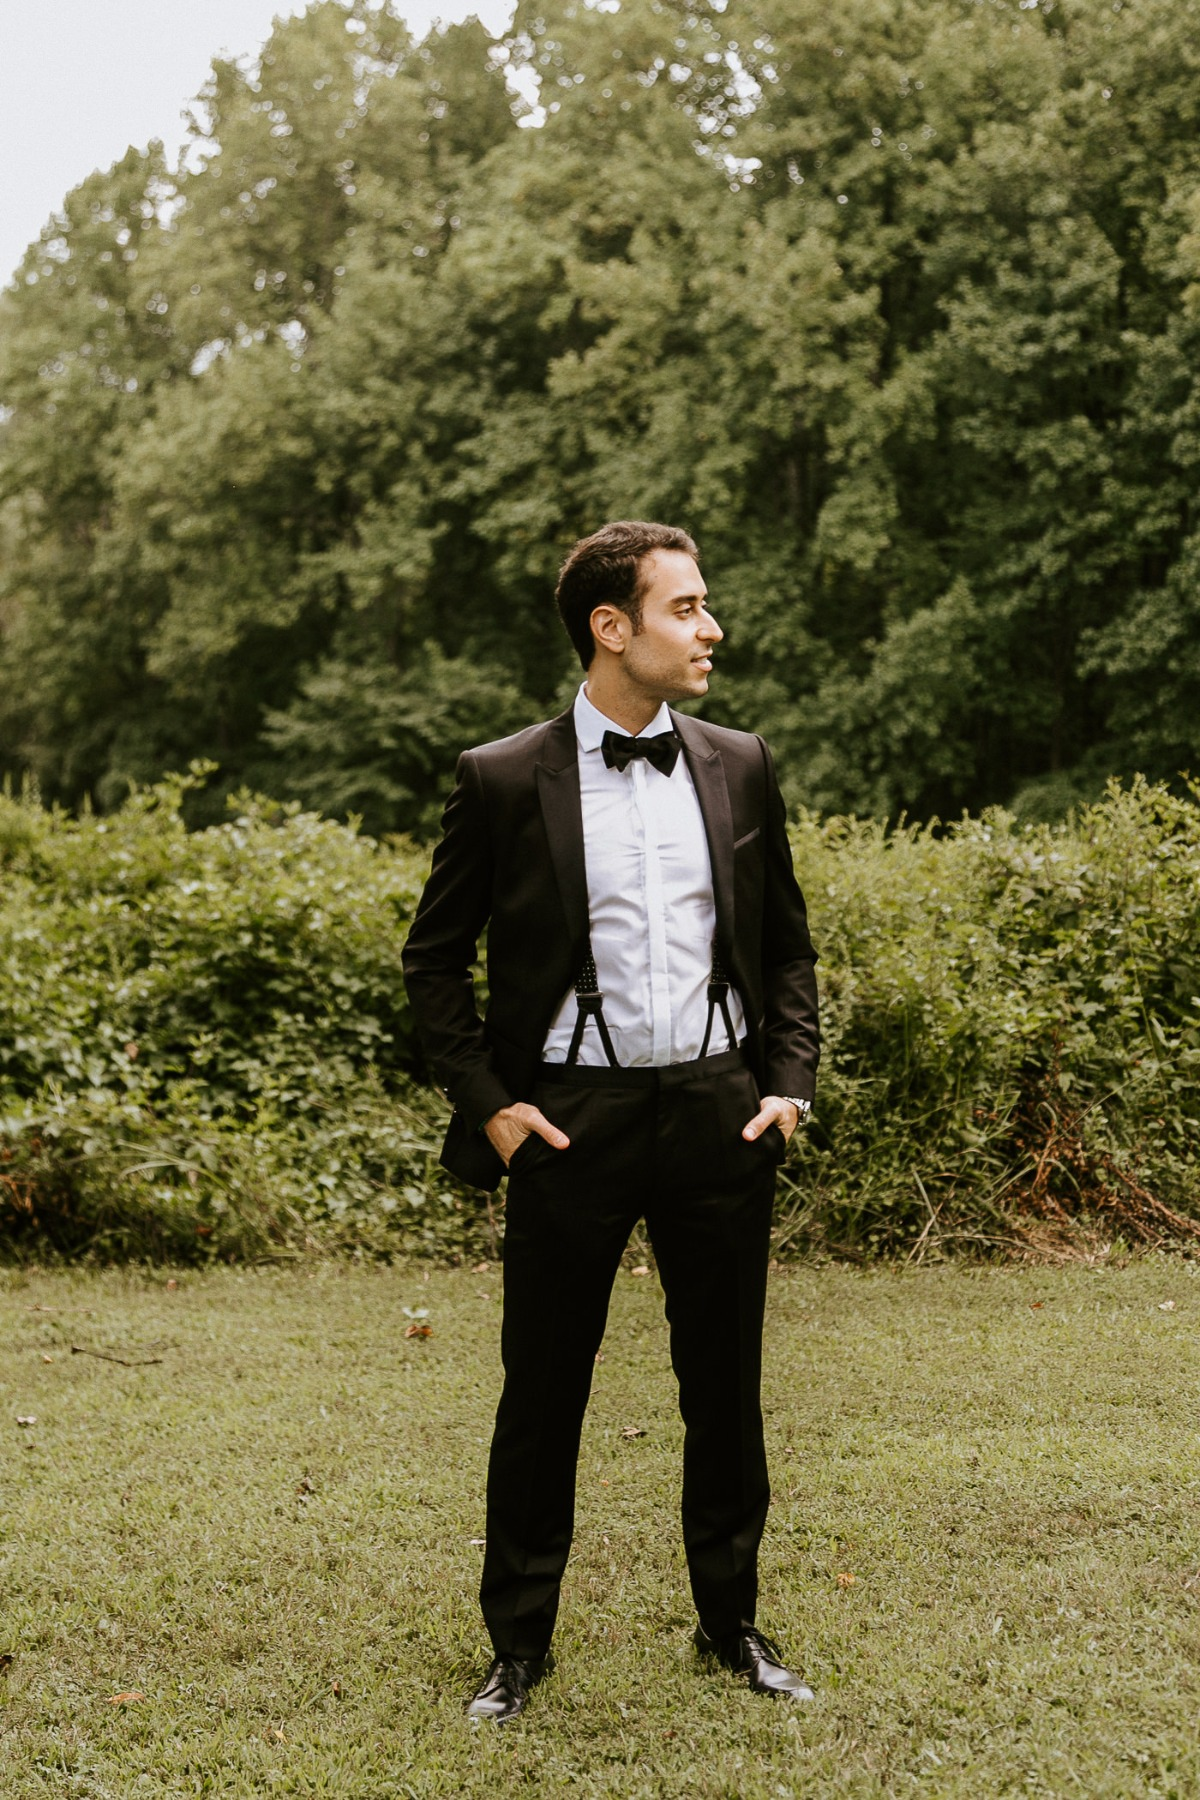 Groom outfit ideas - Black Tux with suspender